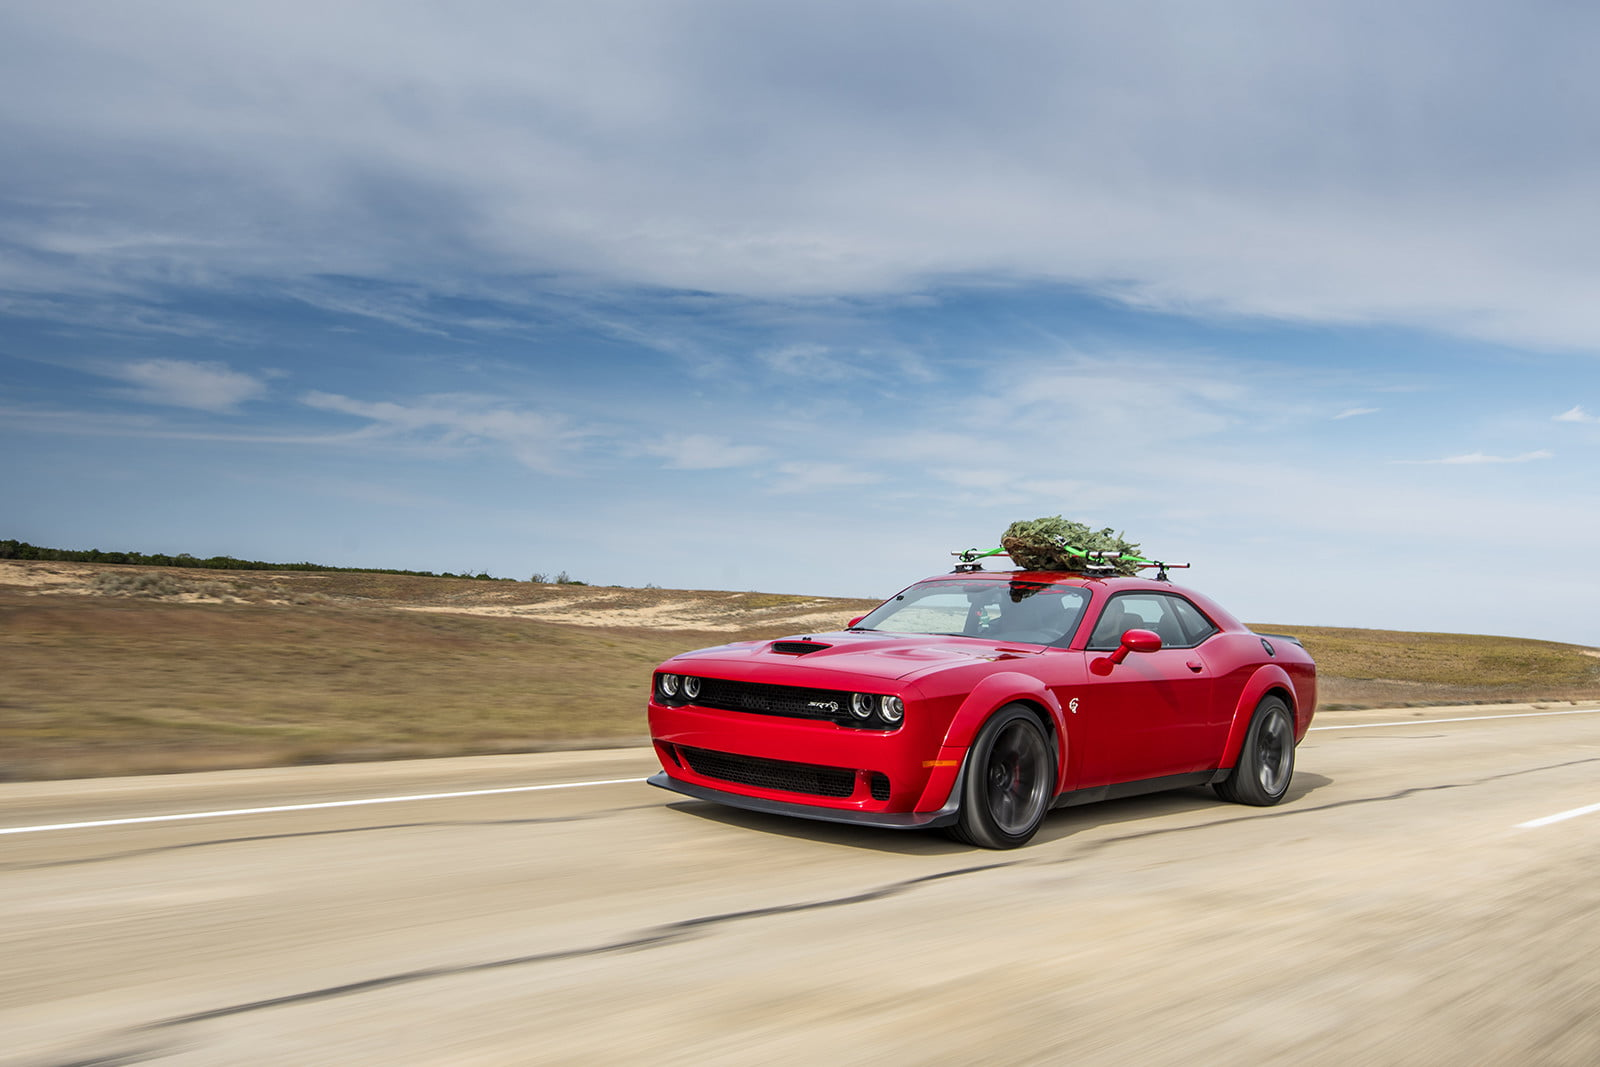 hennessey and dodge takes record for worlds fastest christmas tree 174mph 05